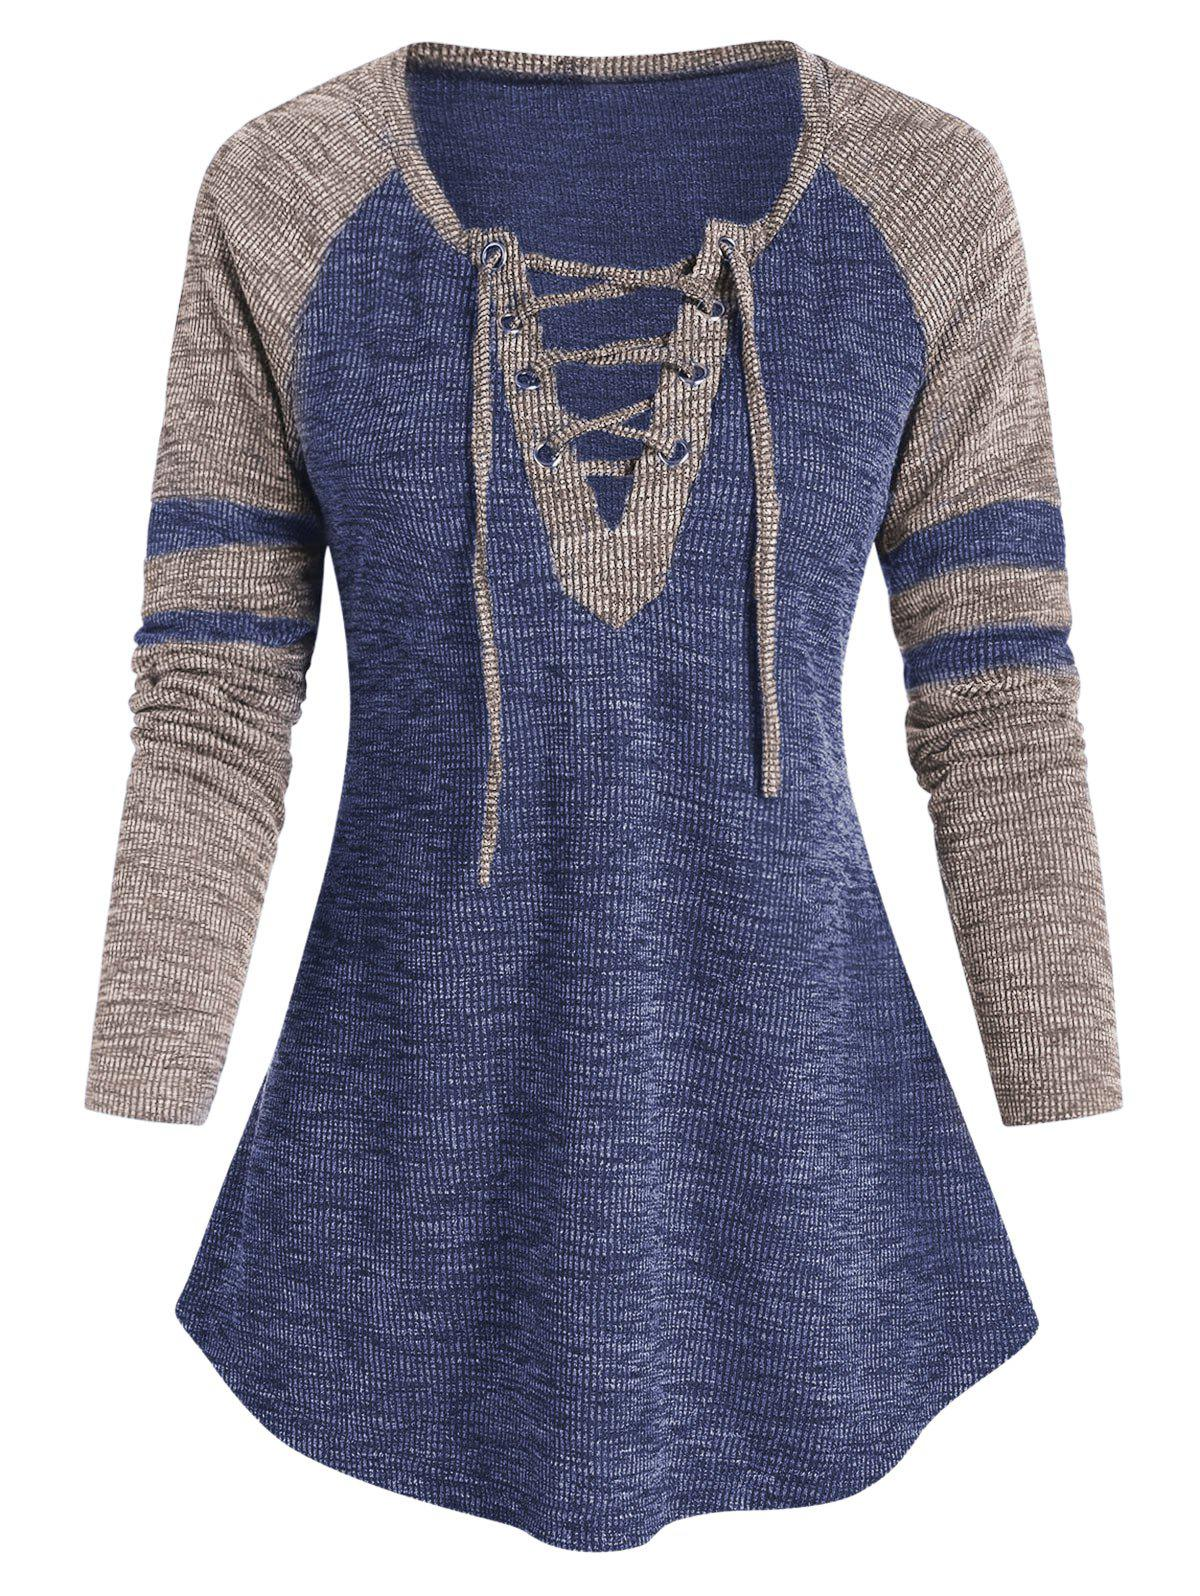 Raglan Sleeve Lace-up Contrast Ribbed T-shirt - DARK SLATE BLUE S